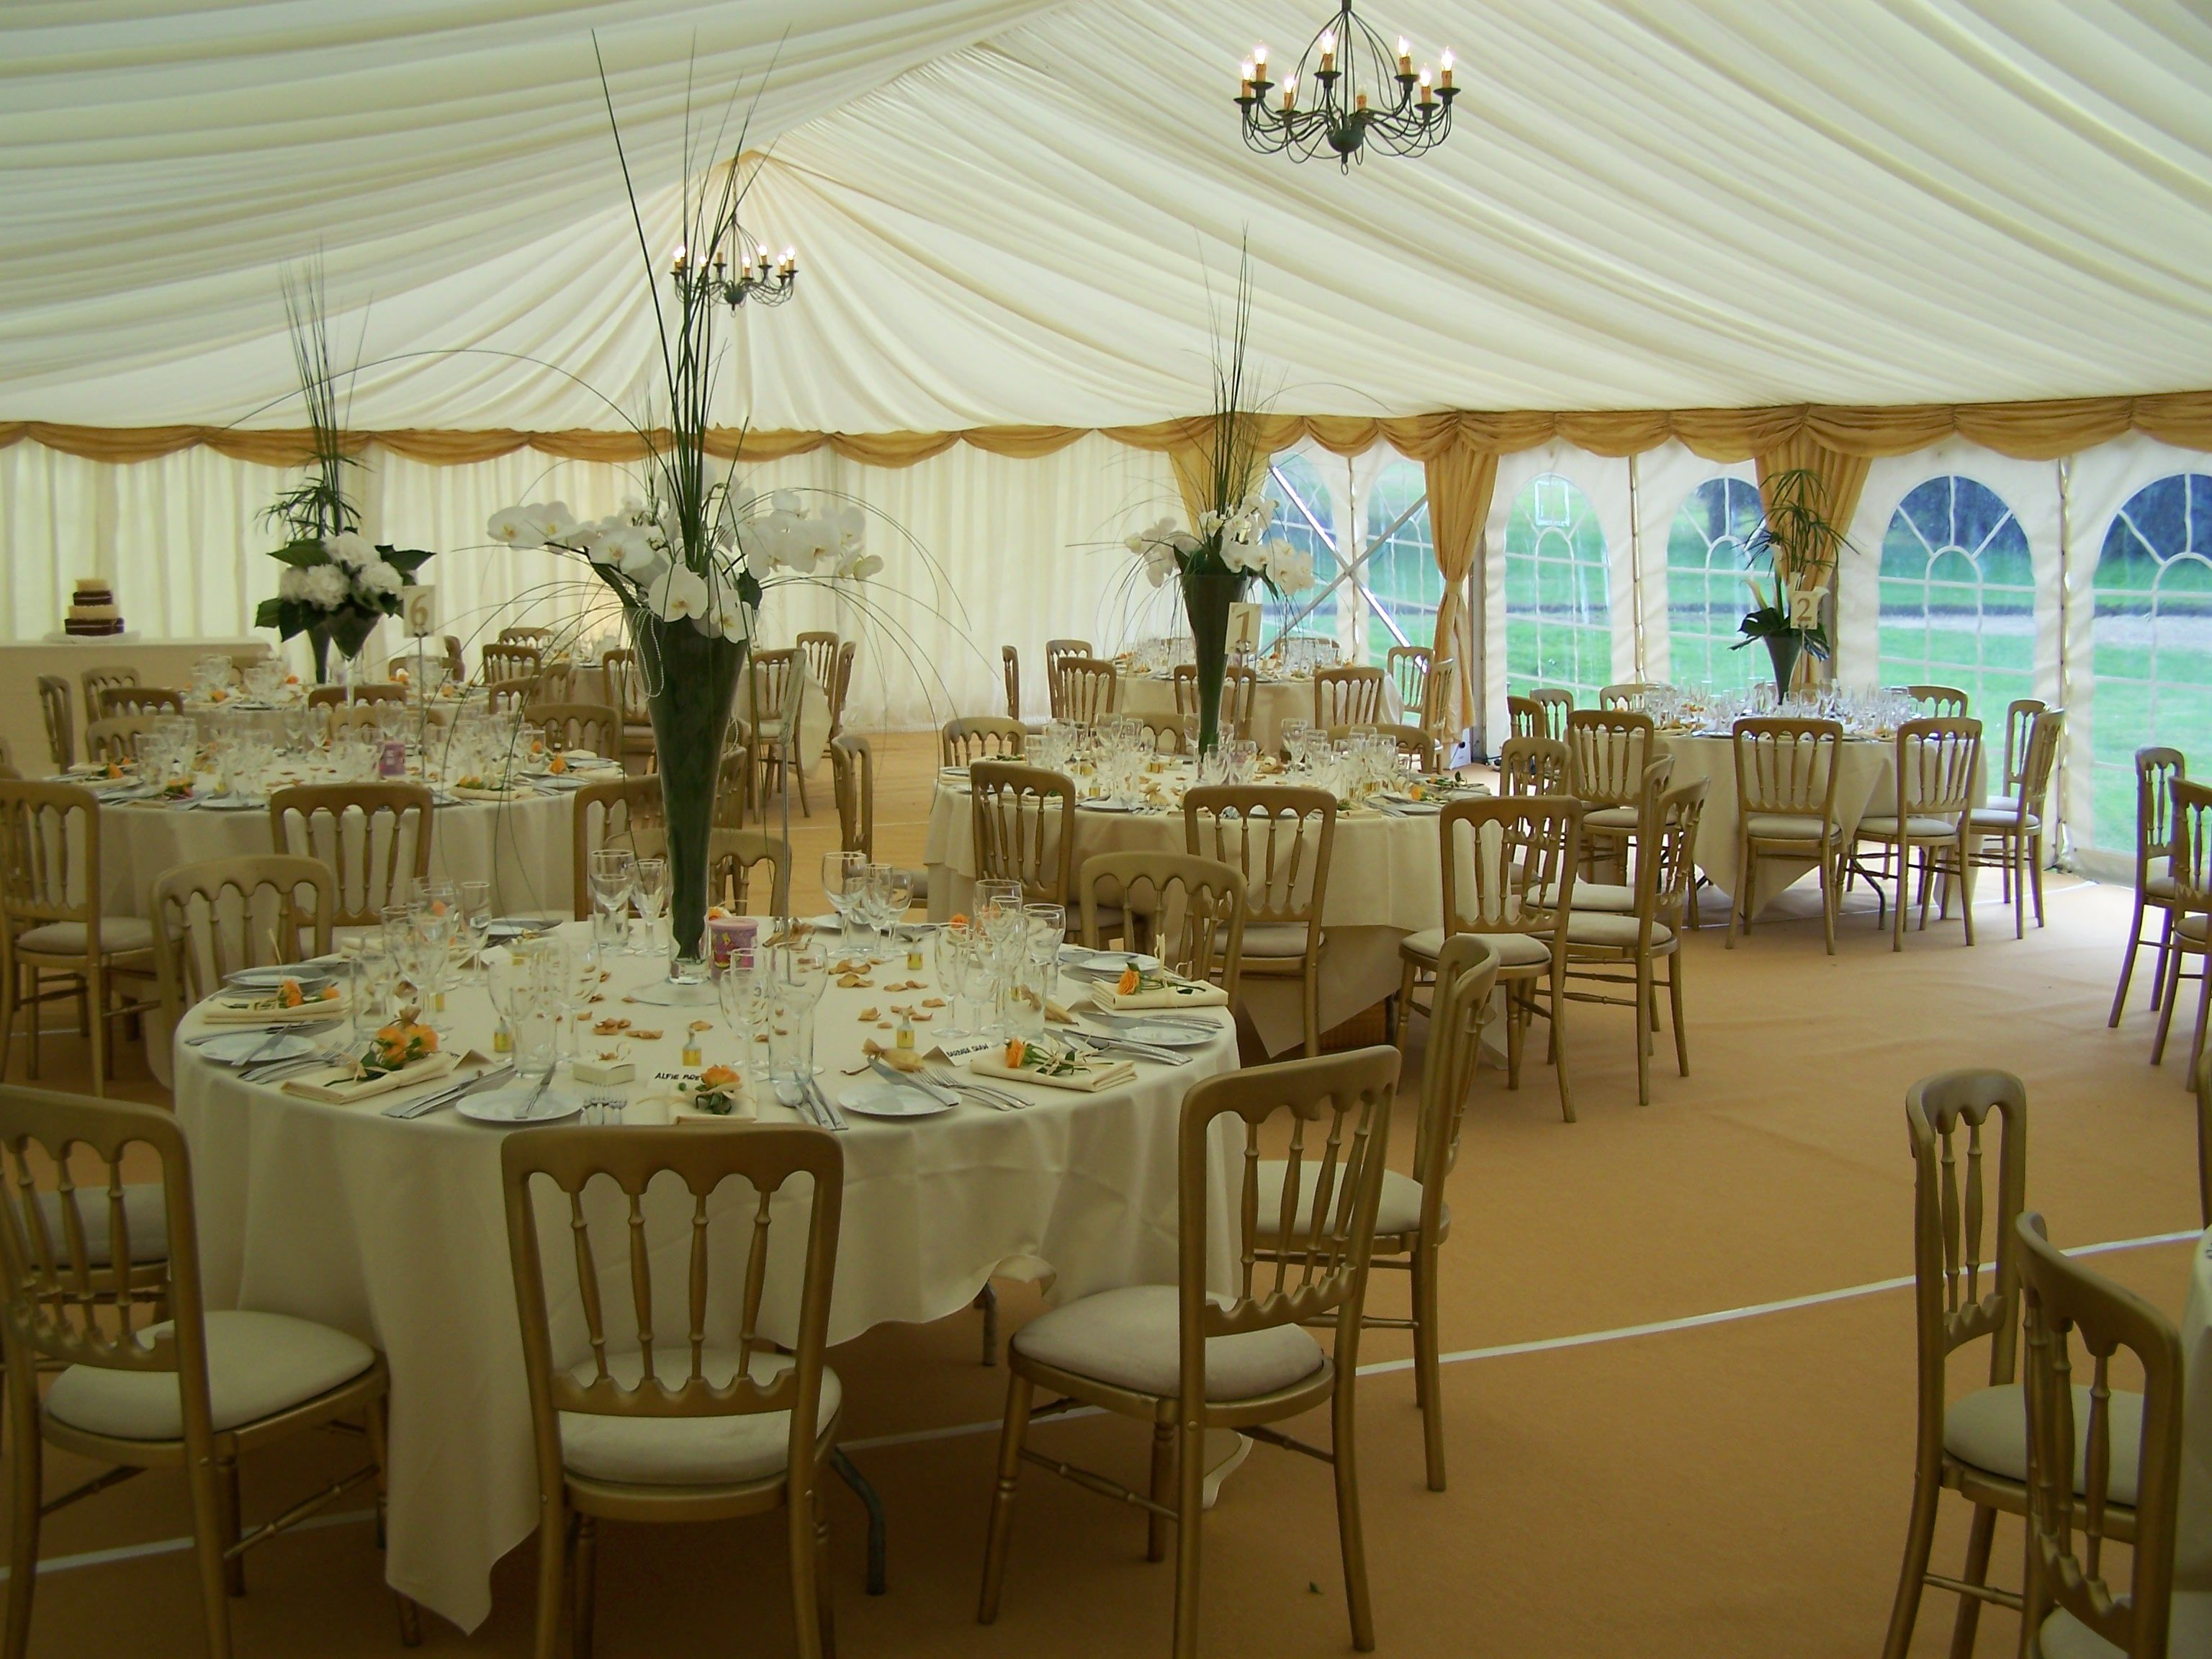 Banquet chairs wedding - Gold Banquet Chairs With Ivory Seat Pads